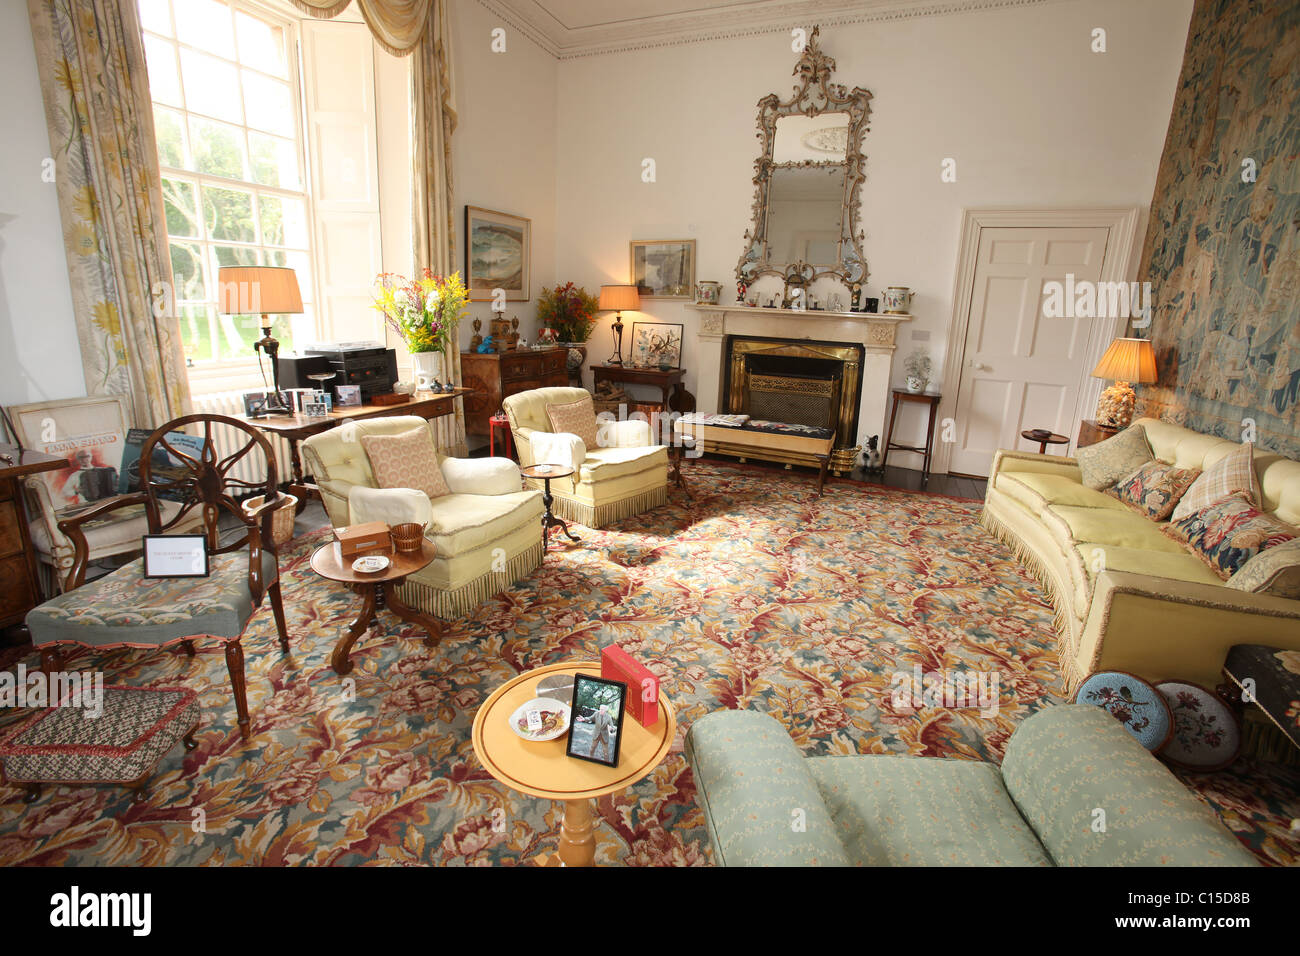 Village Of Mey Scotland The Castle Of Mey Drawing Room Stock Photo 35155579 Alamy